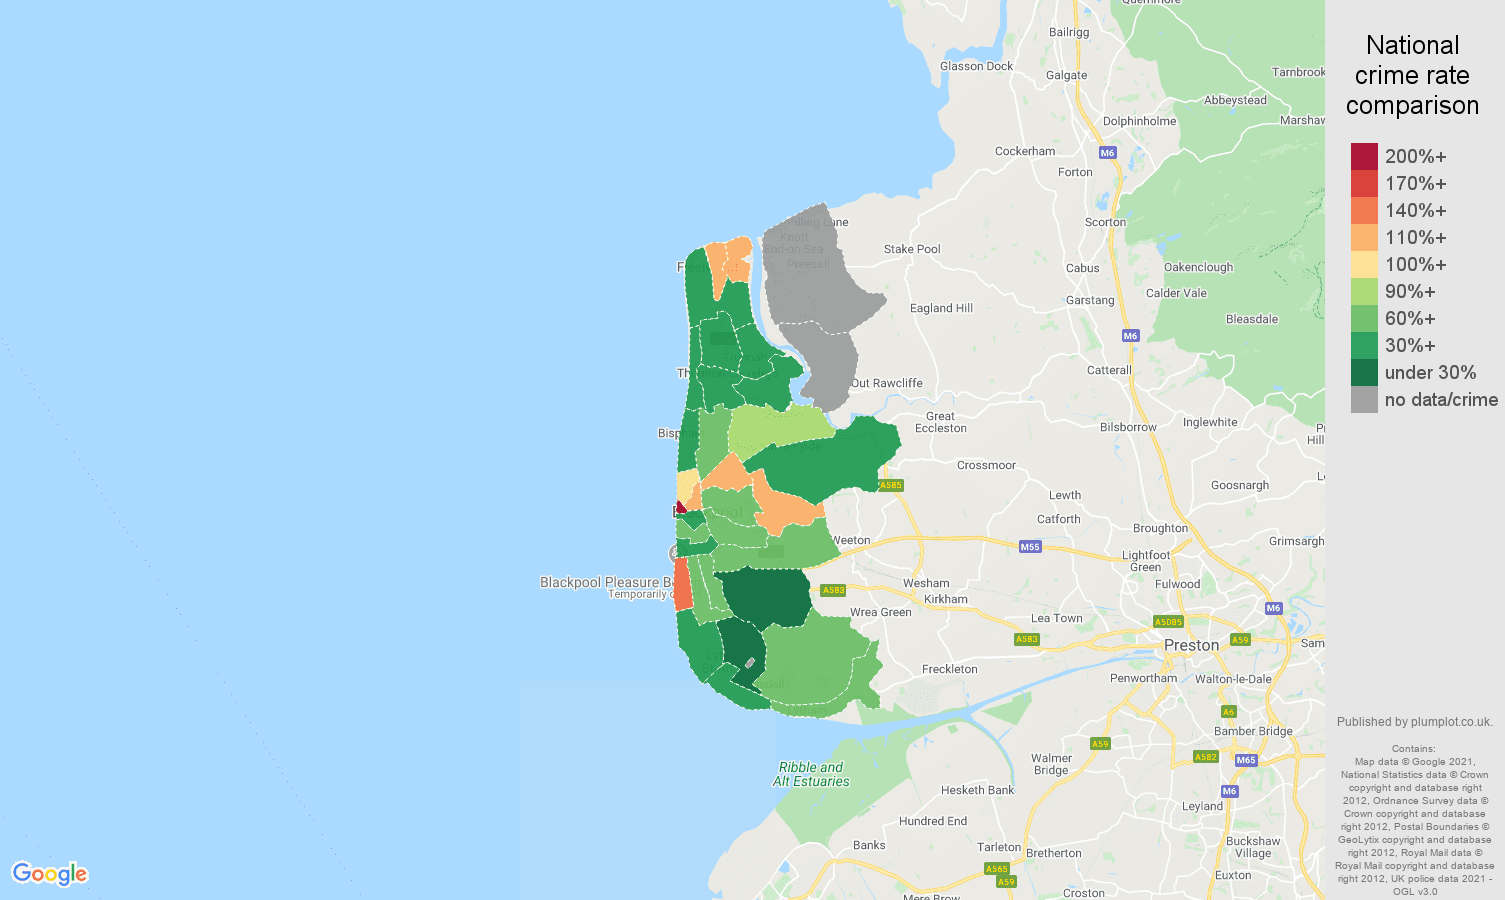 Blackpool bicycle theft crime rate comparison map